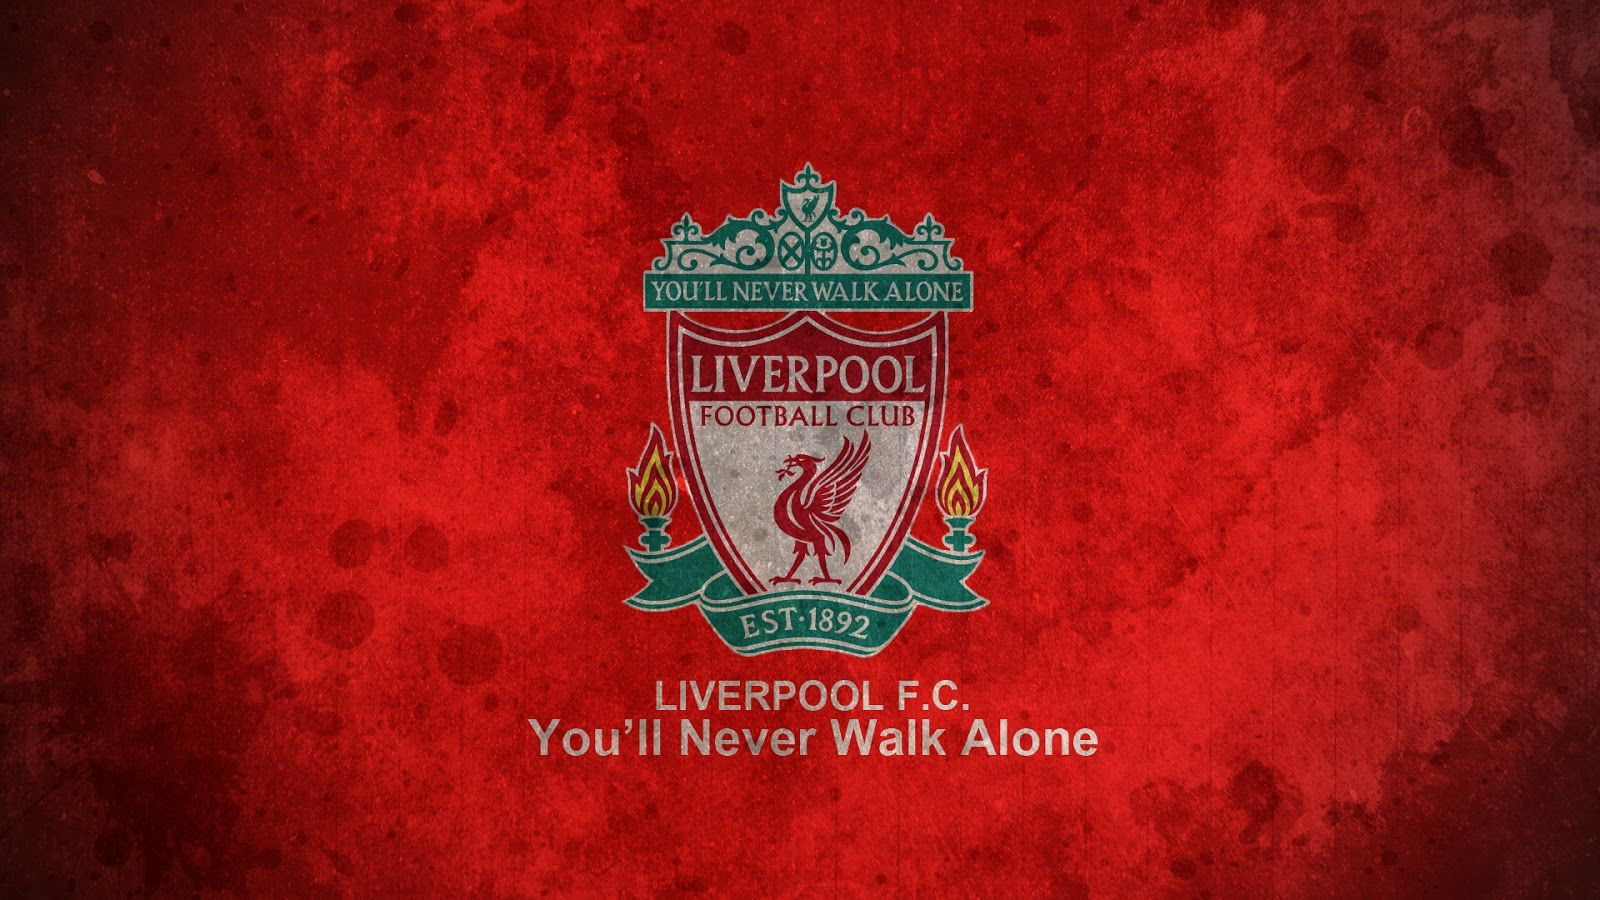 Liverpool Fc Hd Logo Wallapapers For Desktop 2020 Collection Liverpool Core